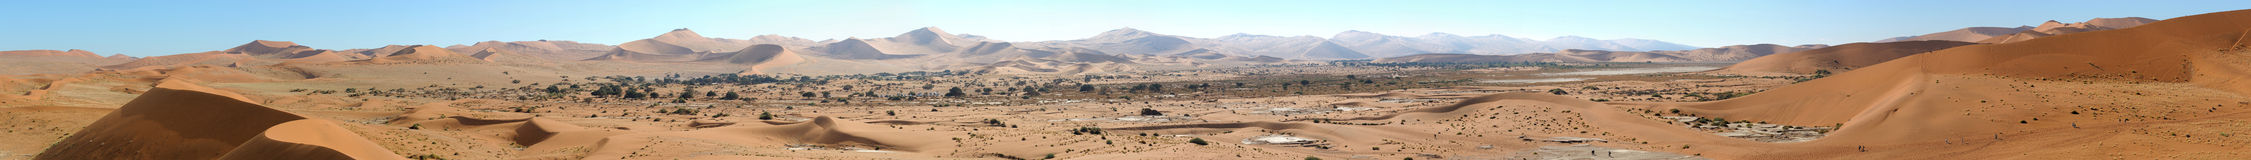 Sossusvlei panorama 1 Royalty Free Stock Photos